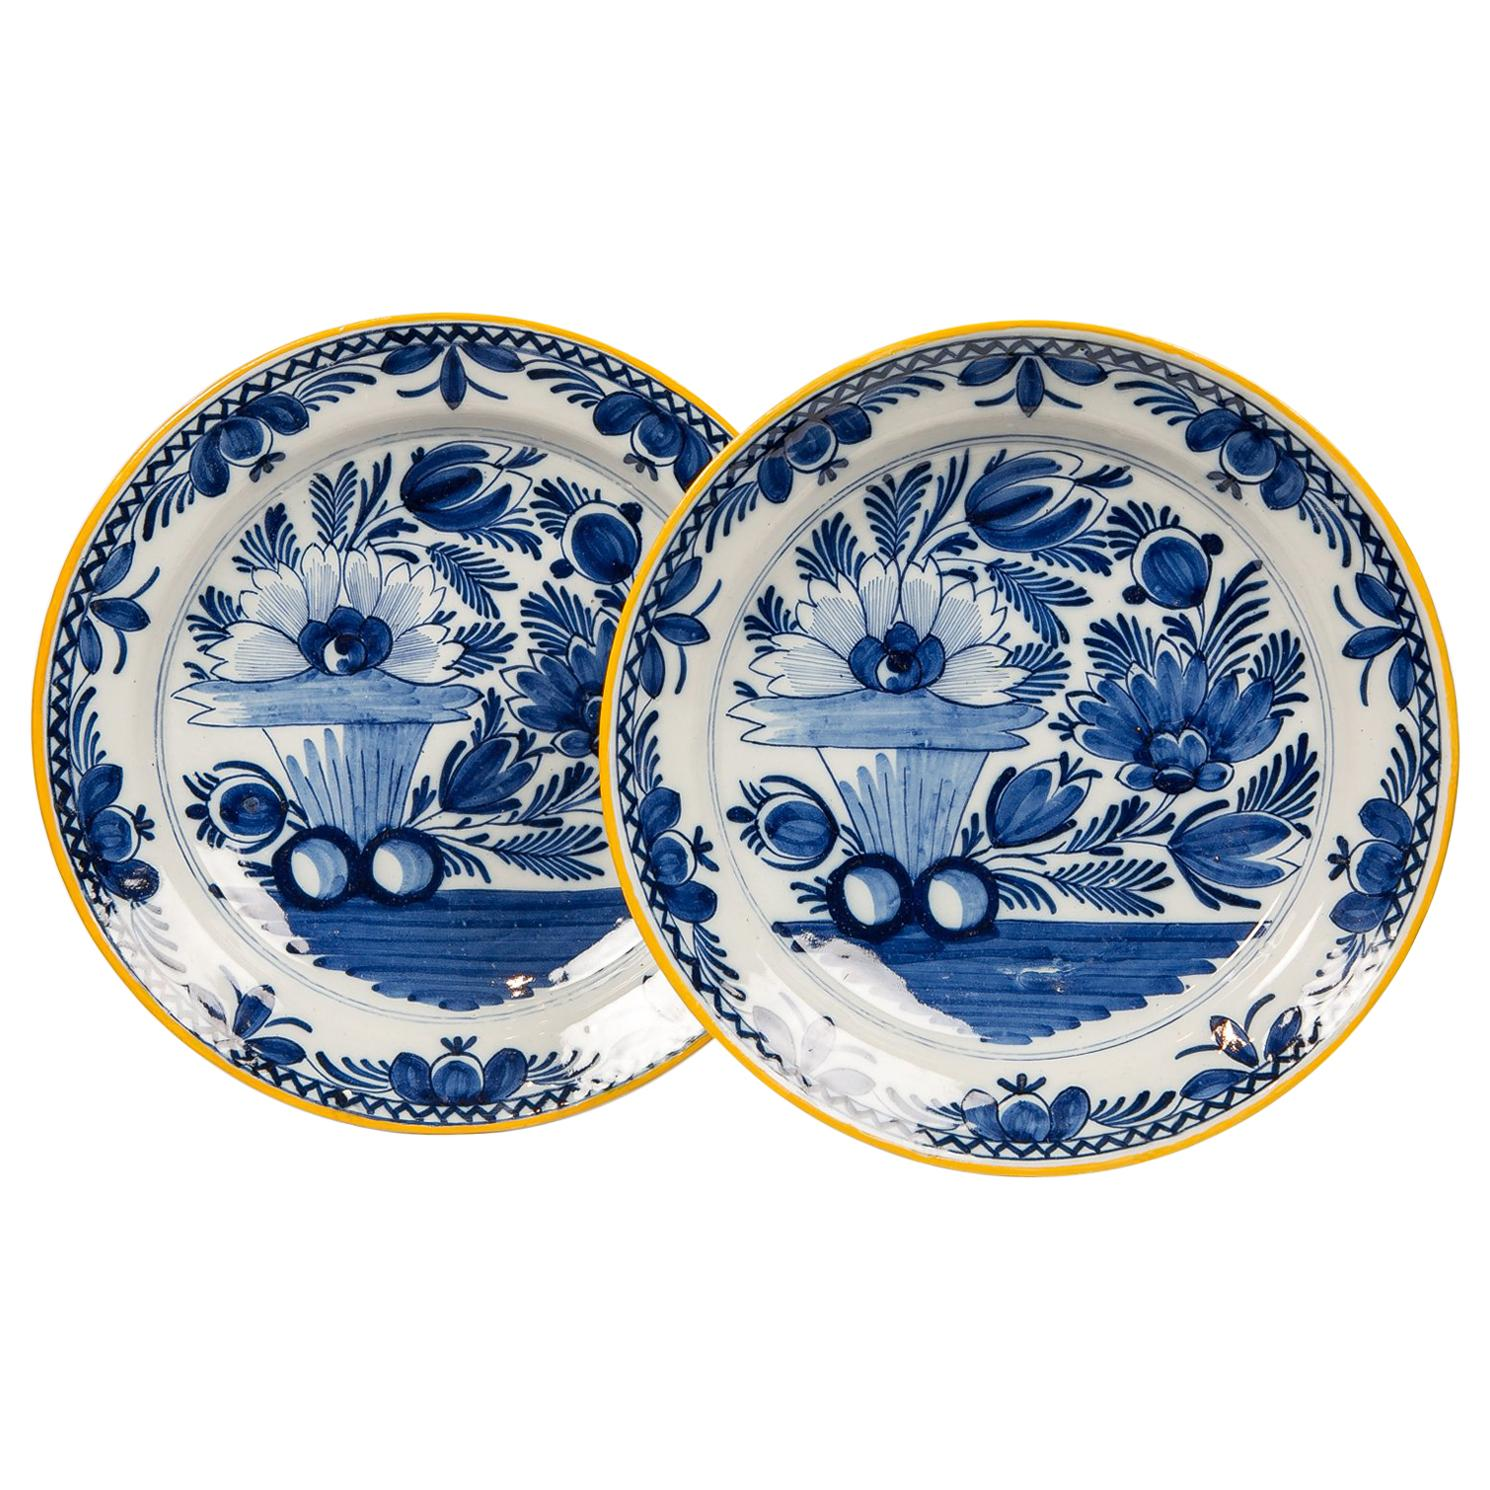 Pair of Antique Blue and White Delft Chargers Made circa 1800